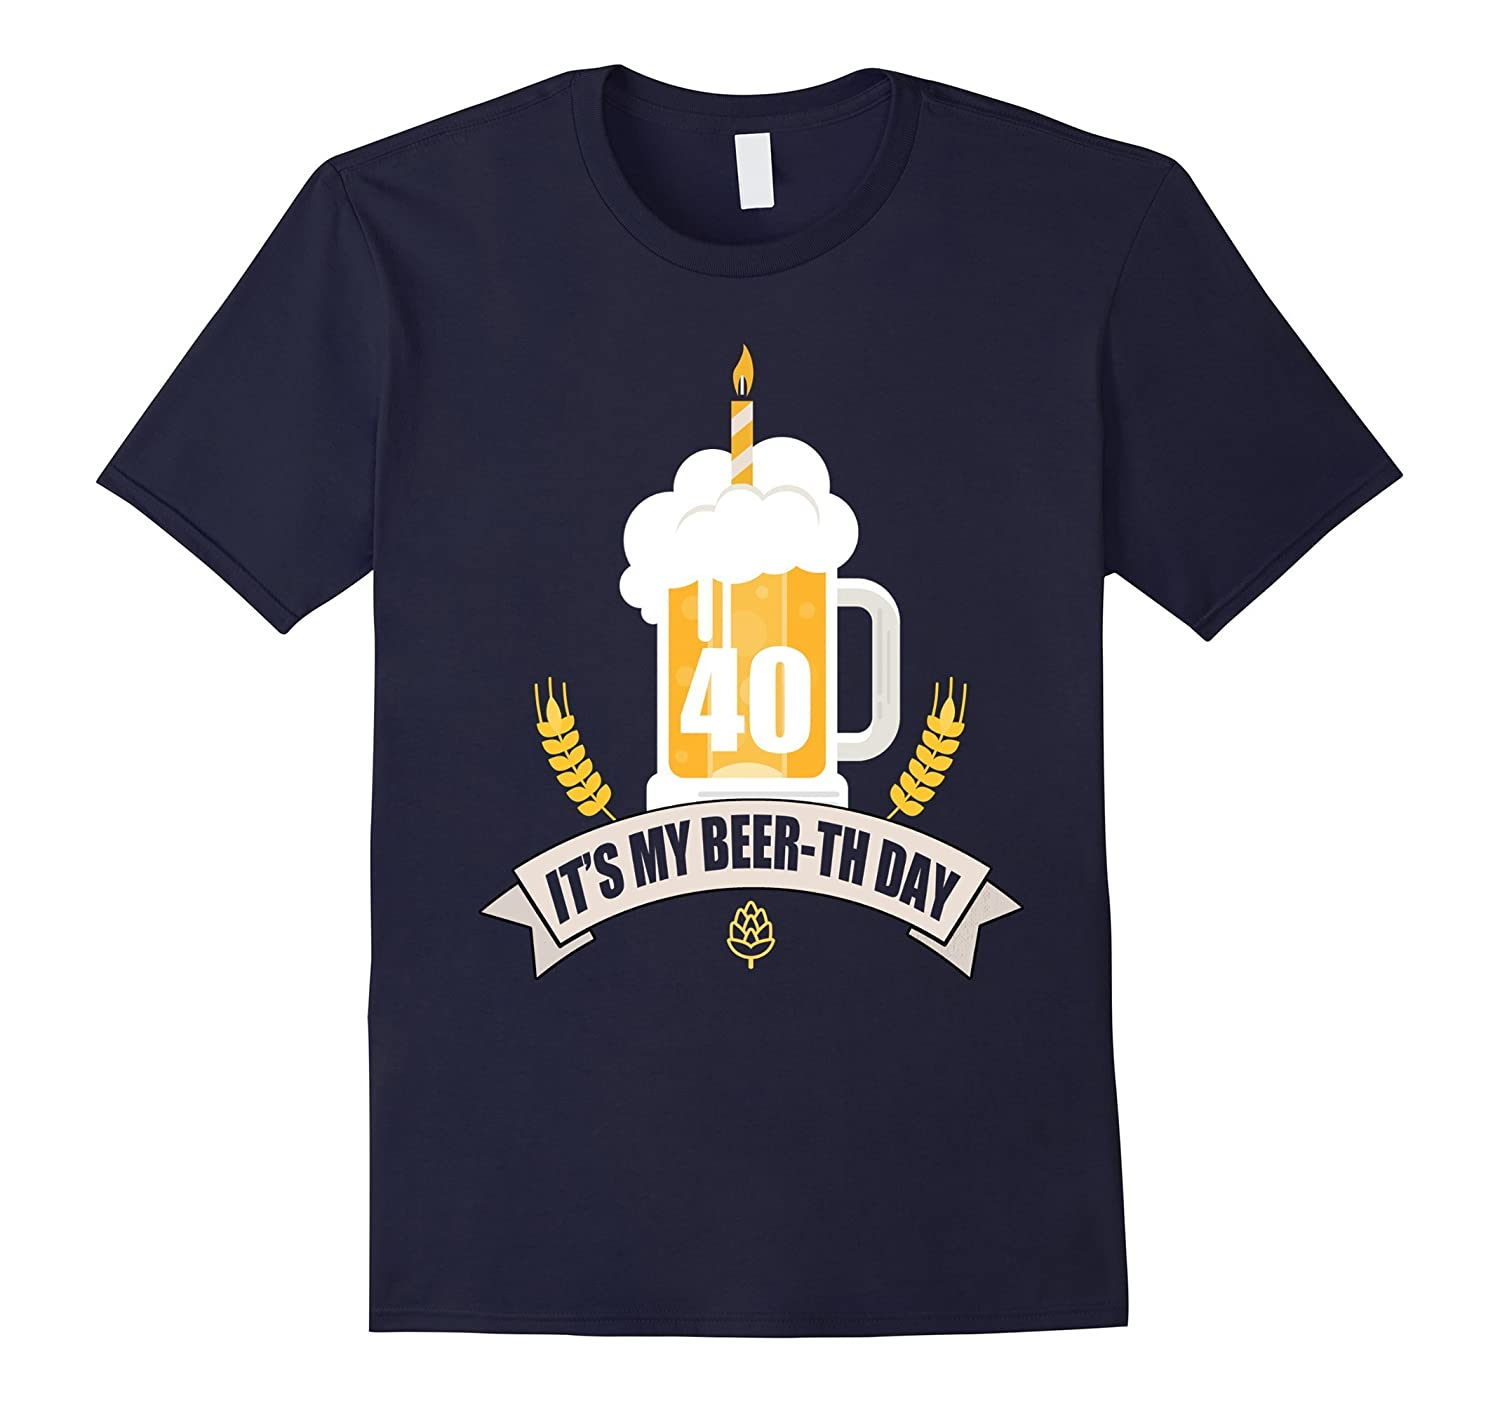 40th Birthday T-Shirt Its my Beer-th Day Funny Beer Shirt-TH